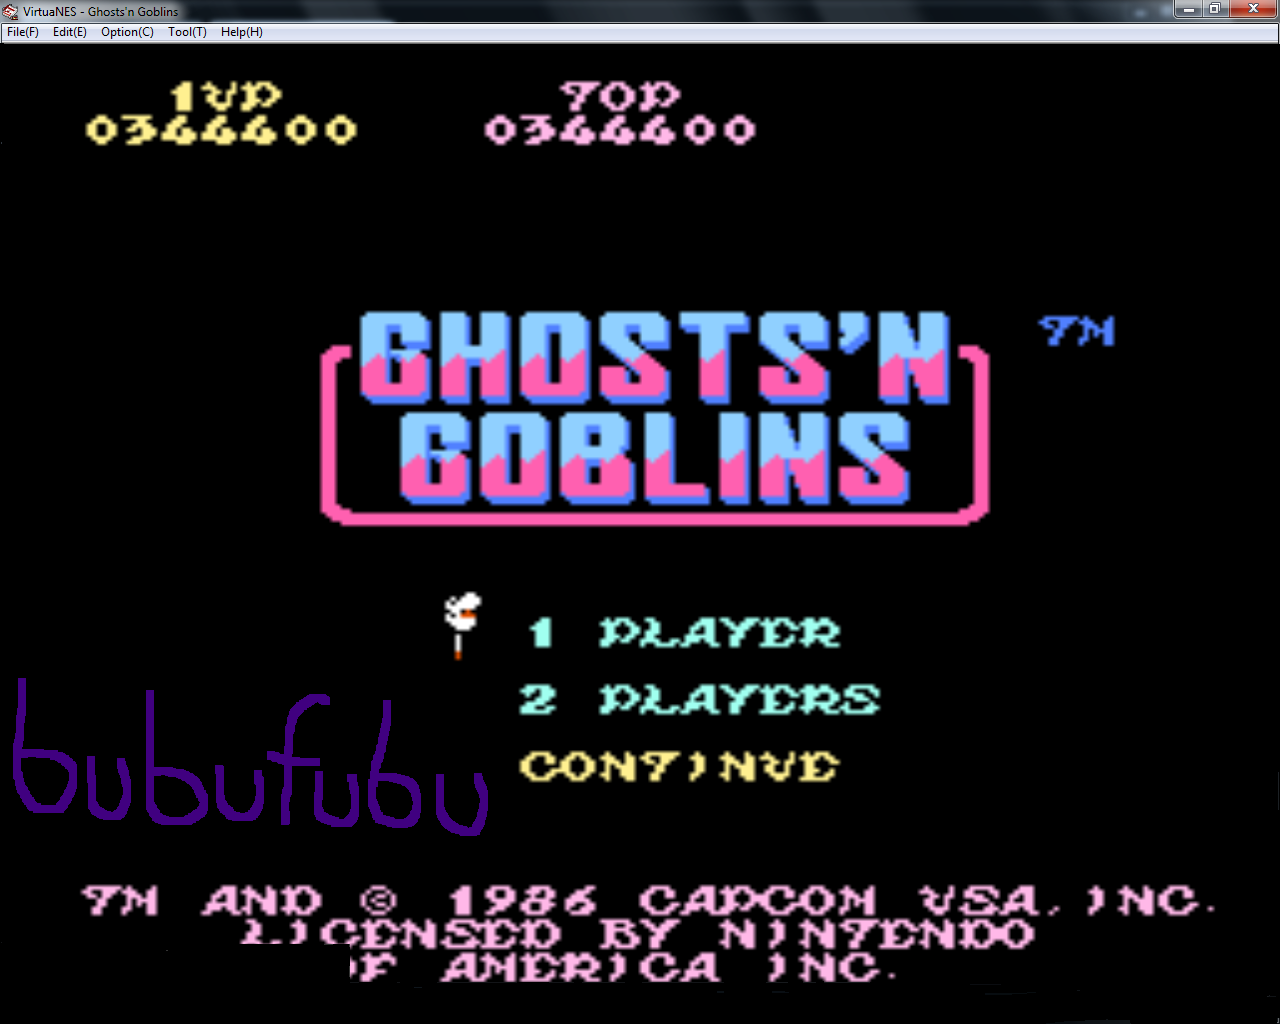 bubufubu: Ghosts N Goblins (NES/Famicom Emulated) 344,400 points on 2015-01-17 16:07:02